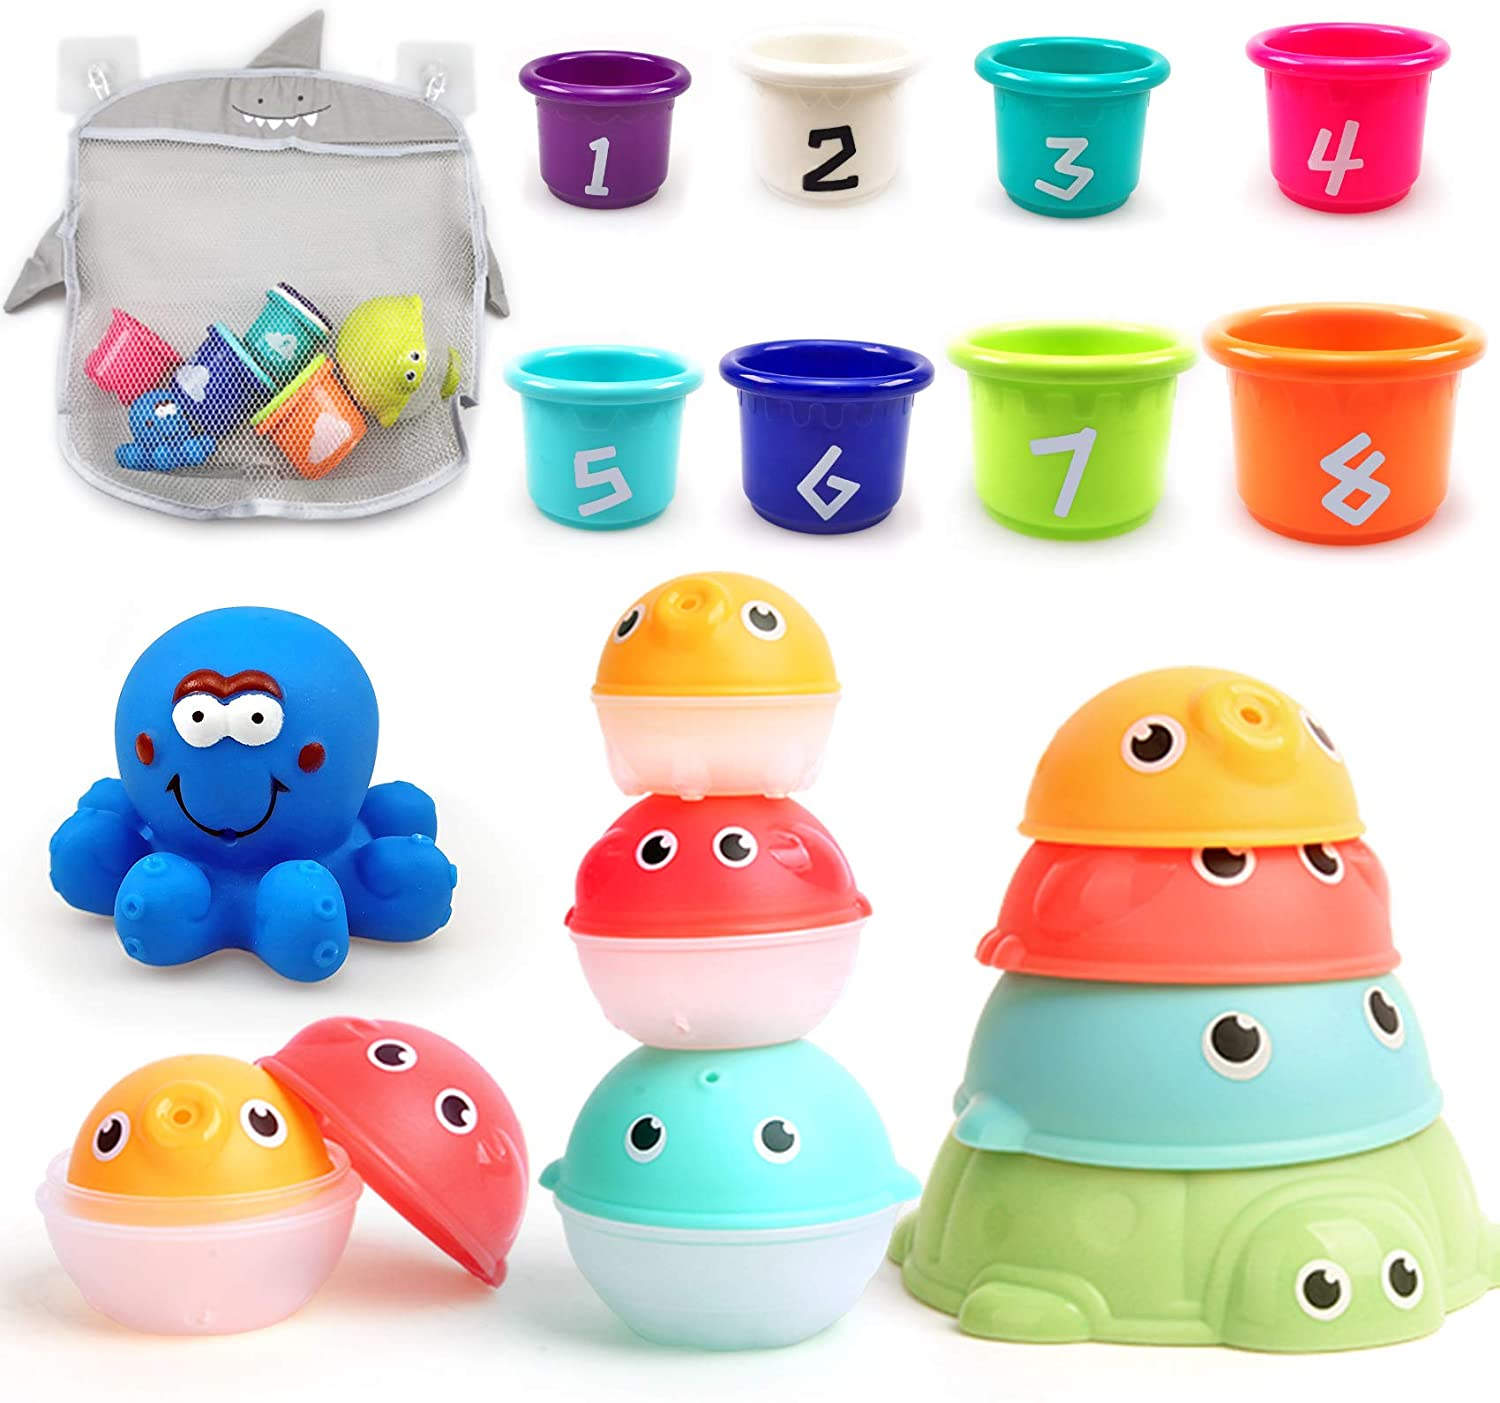 MoraBaby Baby Bath Stacking Toys with Organizer Bag, 8 Stacking Cup Toys, 4 Stack Up Squirts Animal Balls and 1 Floating Blue Octopus, Bath Time Fun Splash Toys, Gifts for Toddler 1-3 Years